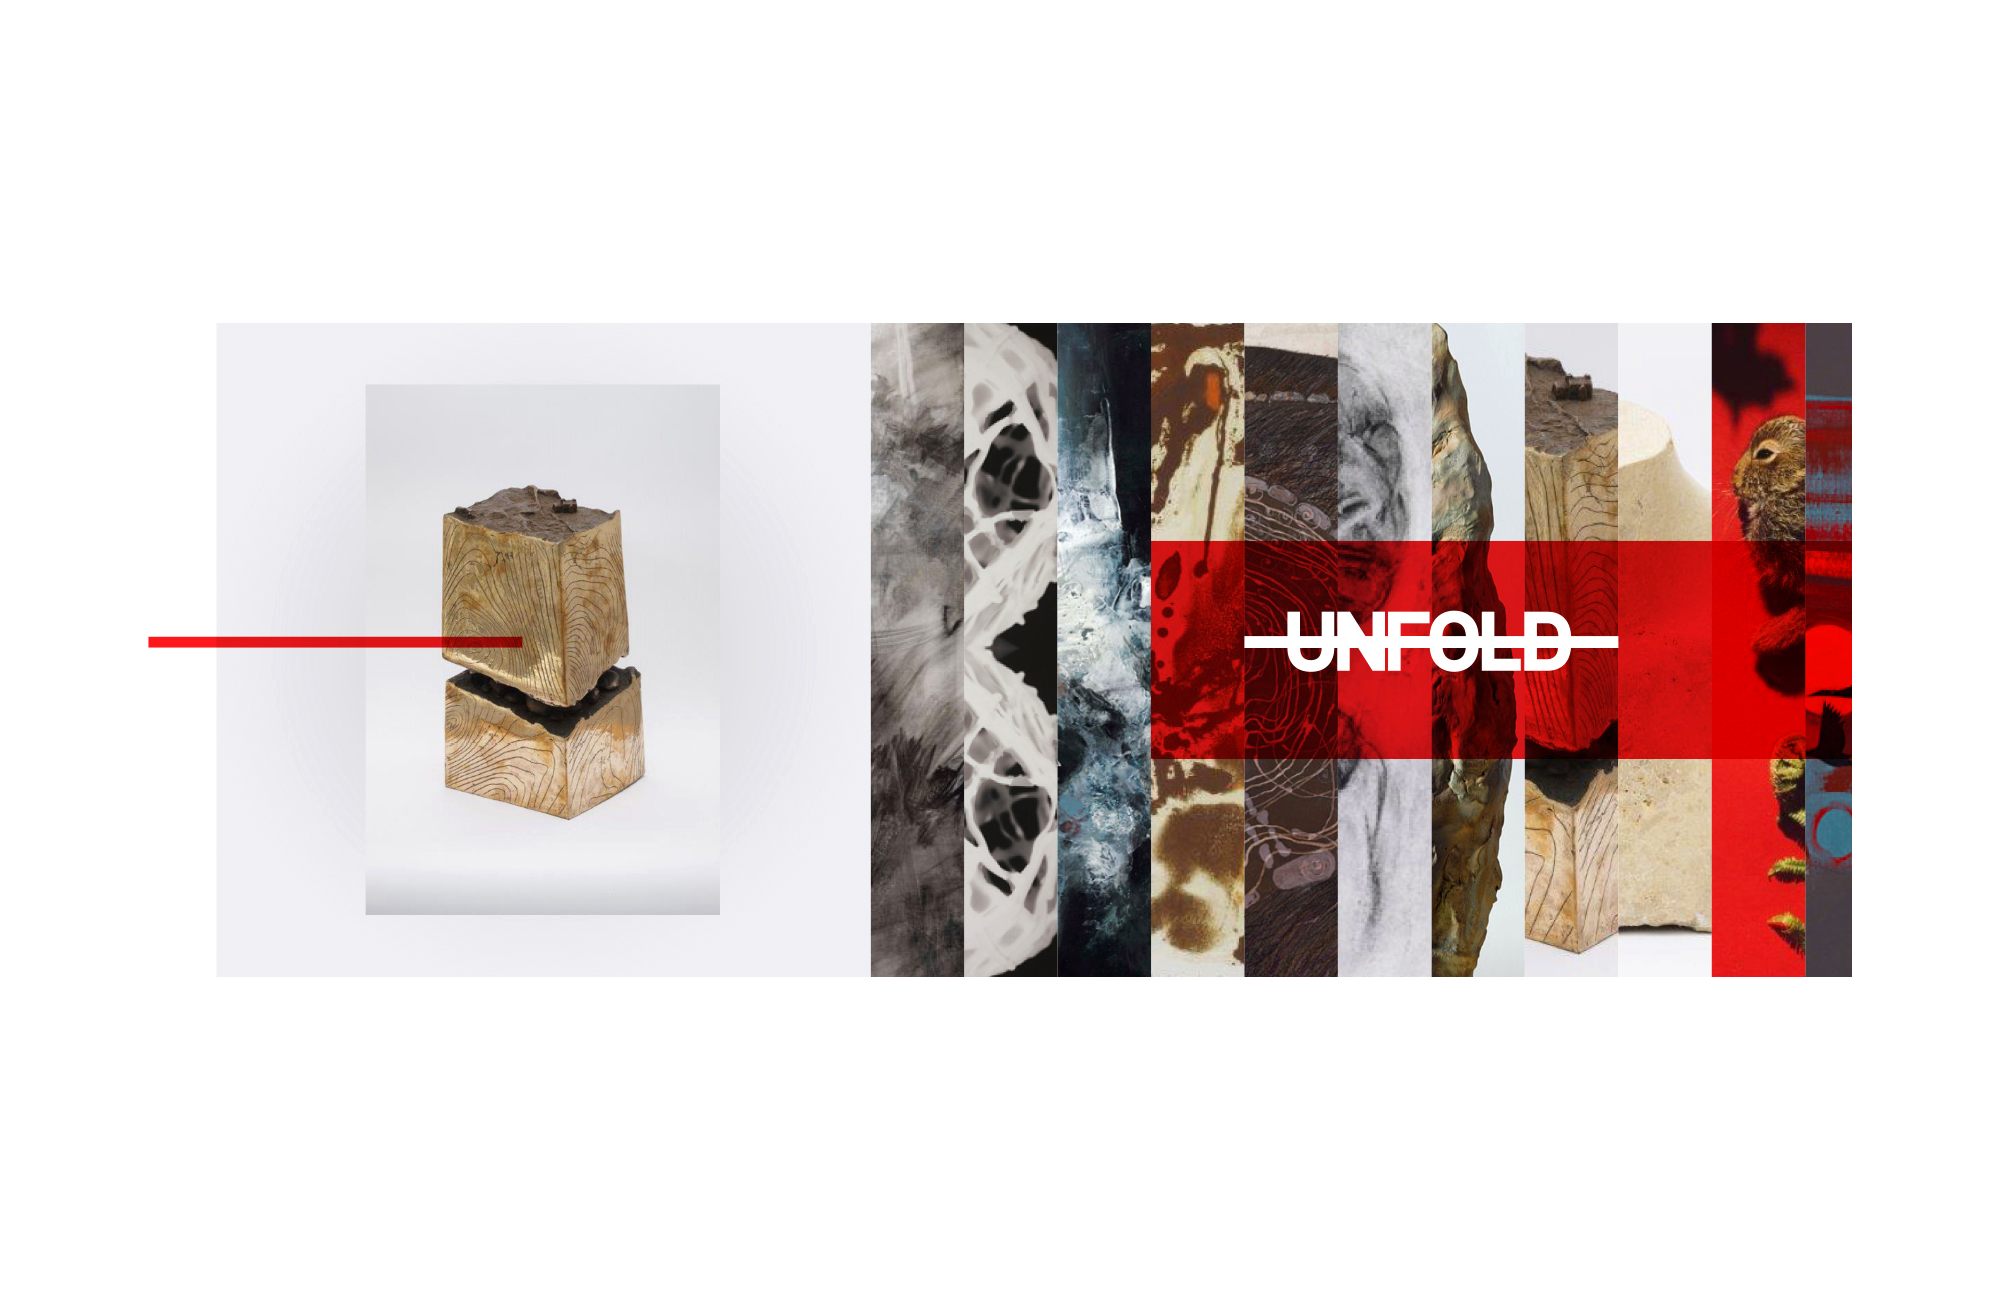 Cover image: Unfold